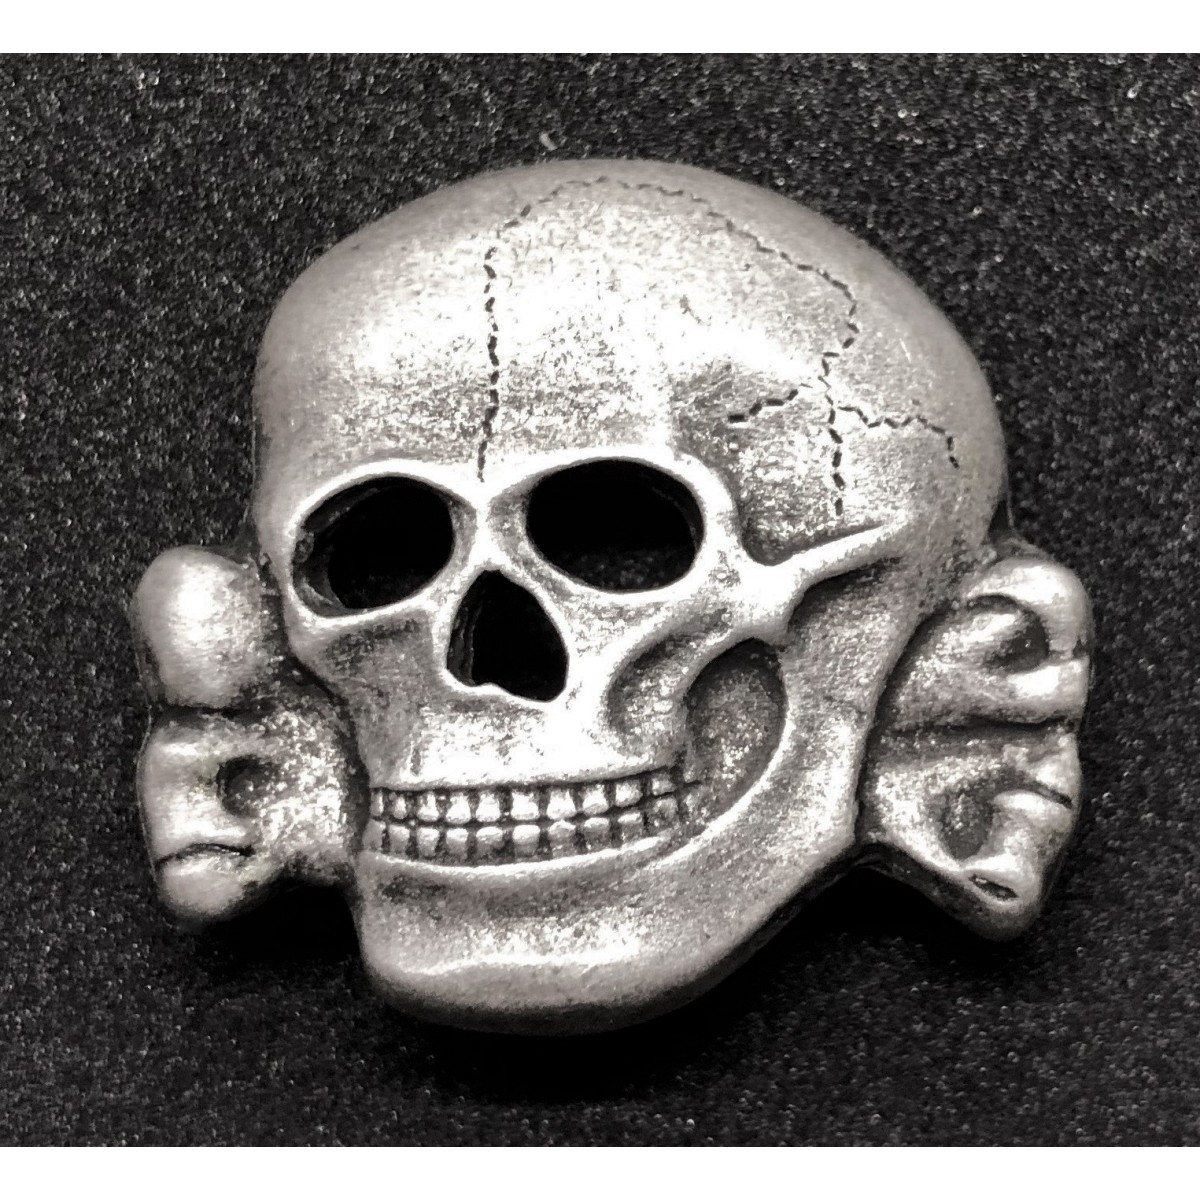 ss-totenkopf-skull-badge-for-hat.jpg